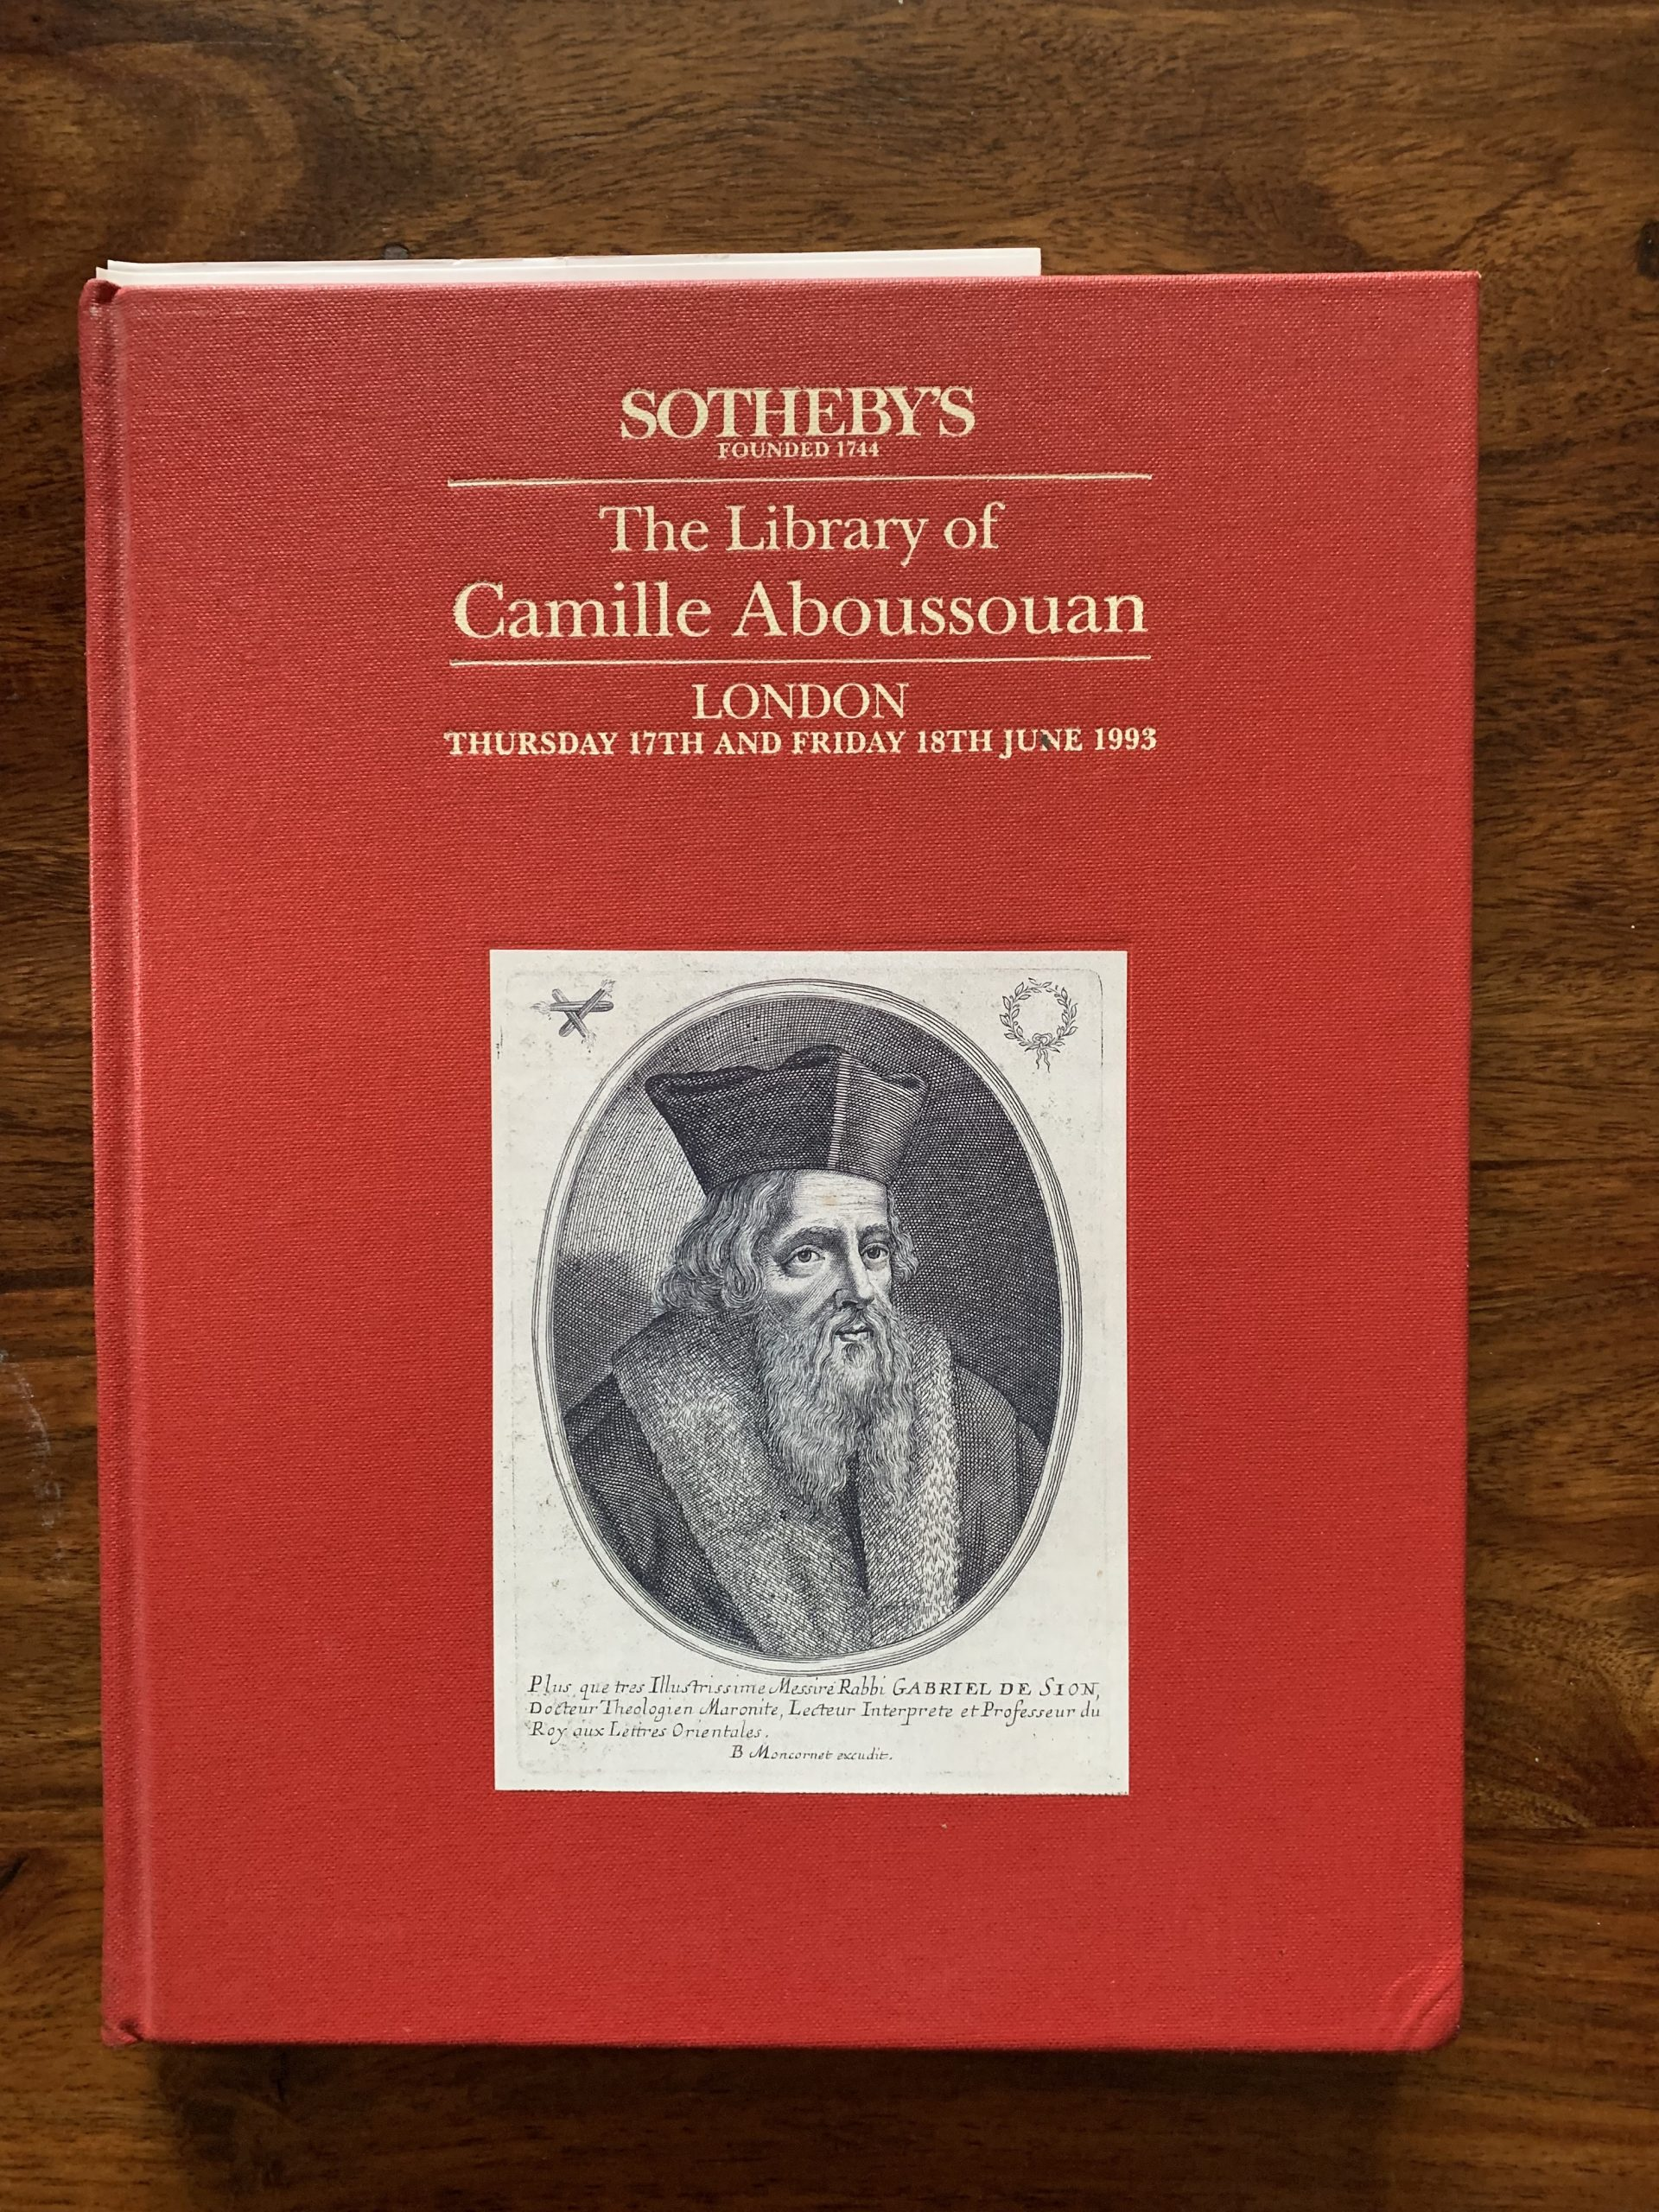 Sotheby's. The library of Camille Aboussouan.